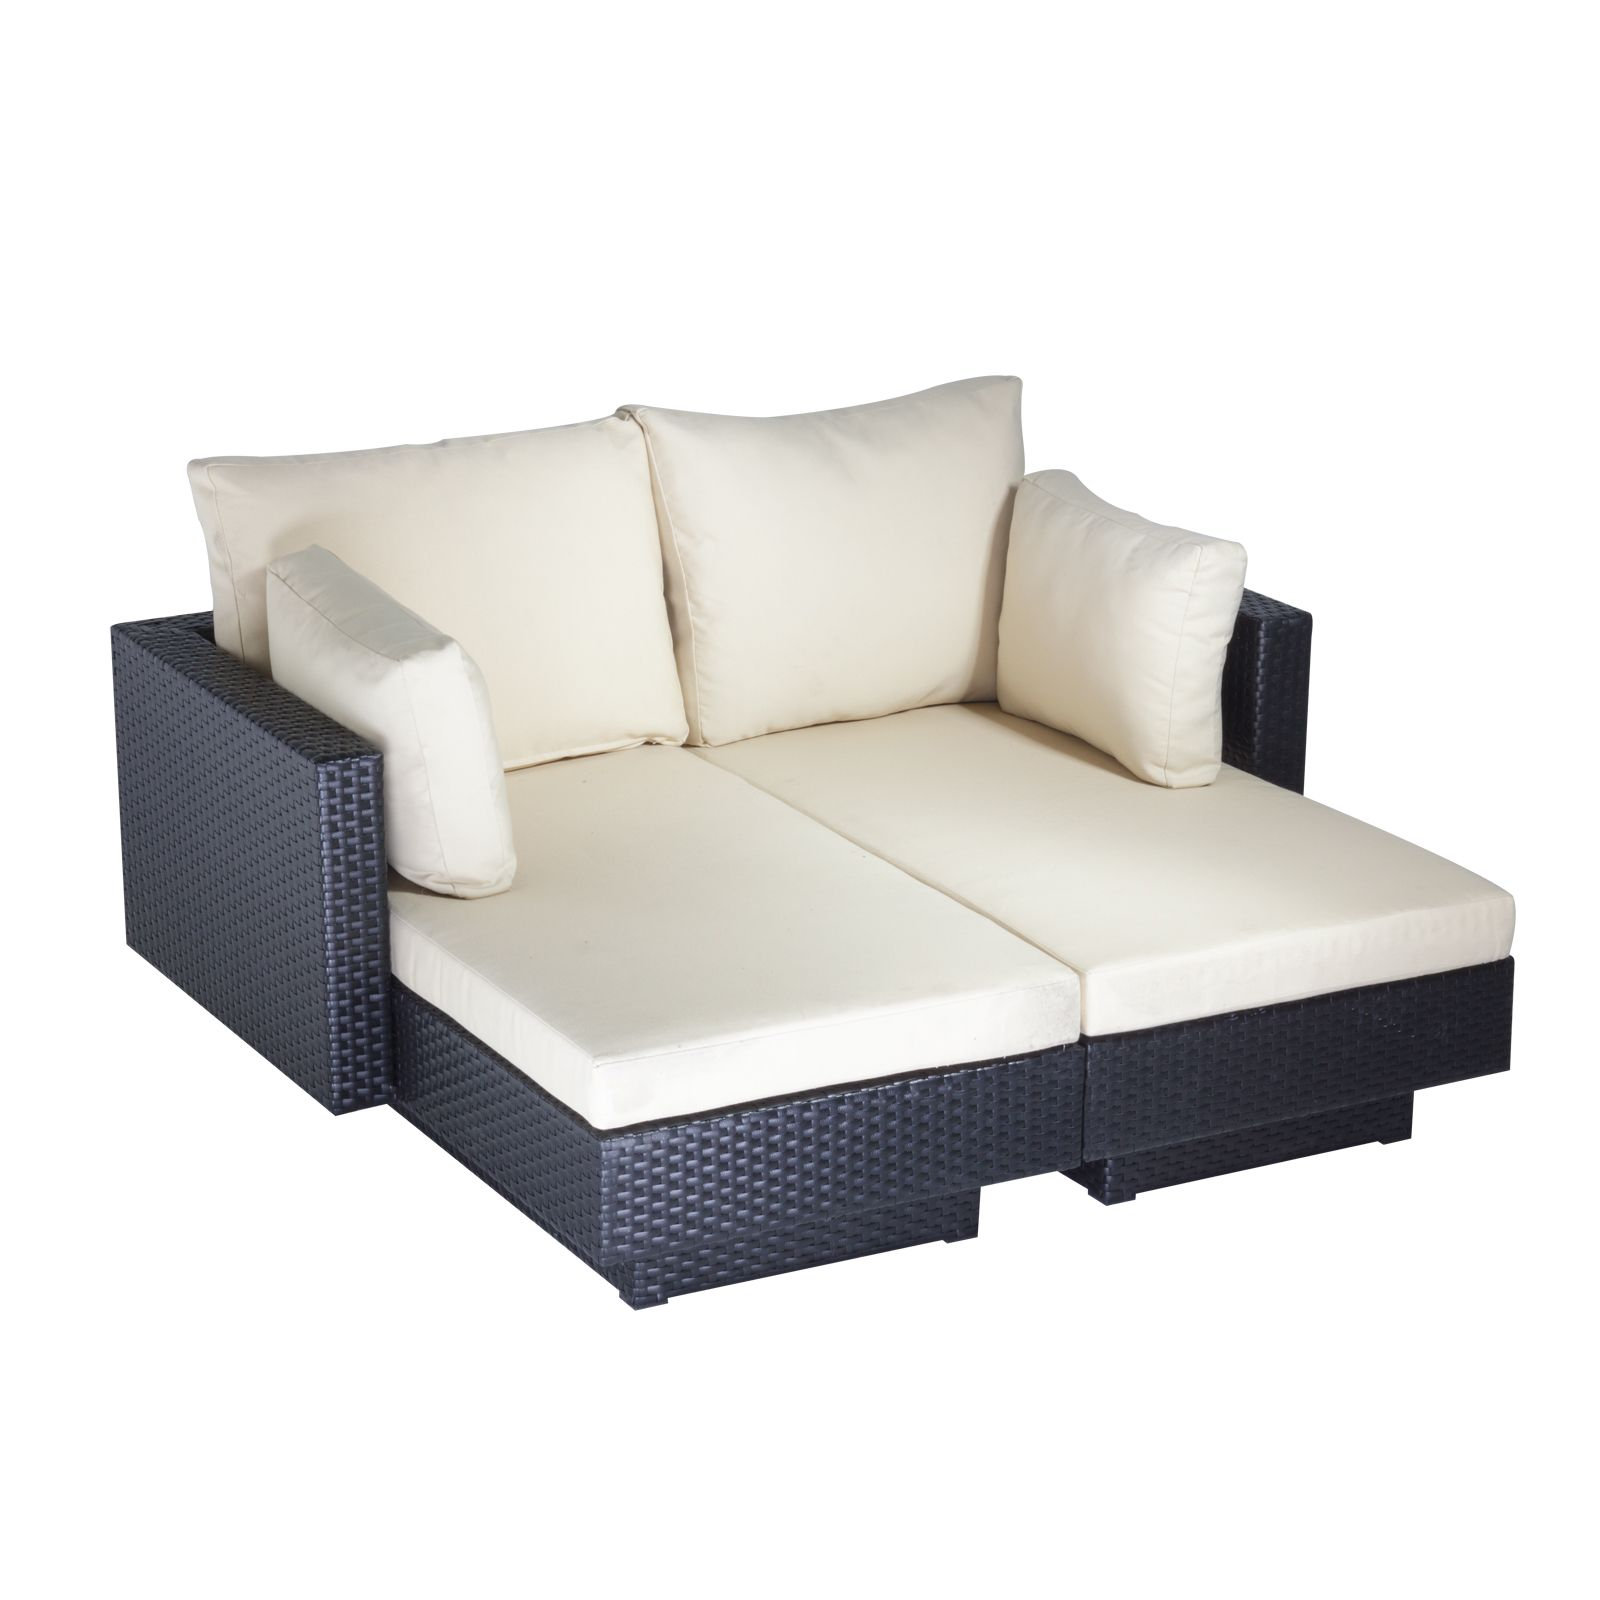 Chicago 2 seater rattan furniture black super gar